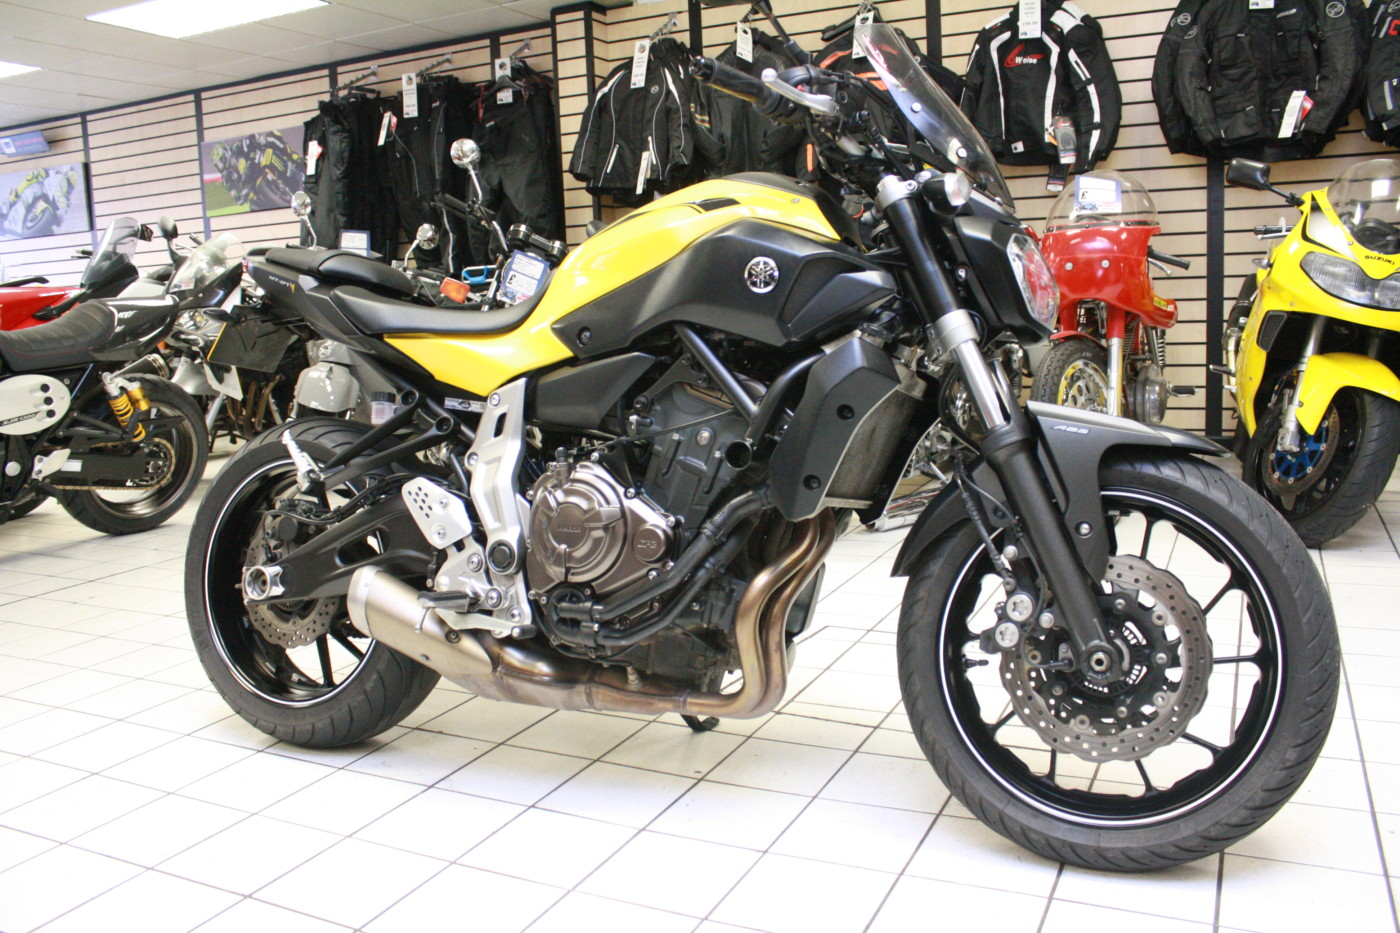 Yamaha MT-07 700cc Yellow 2015 ABS